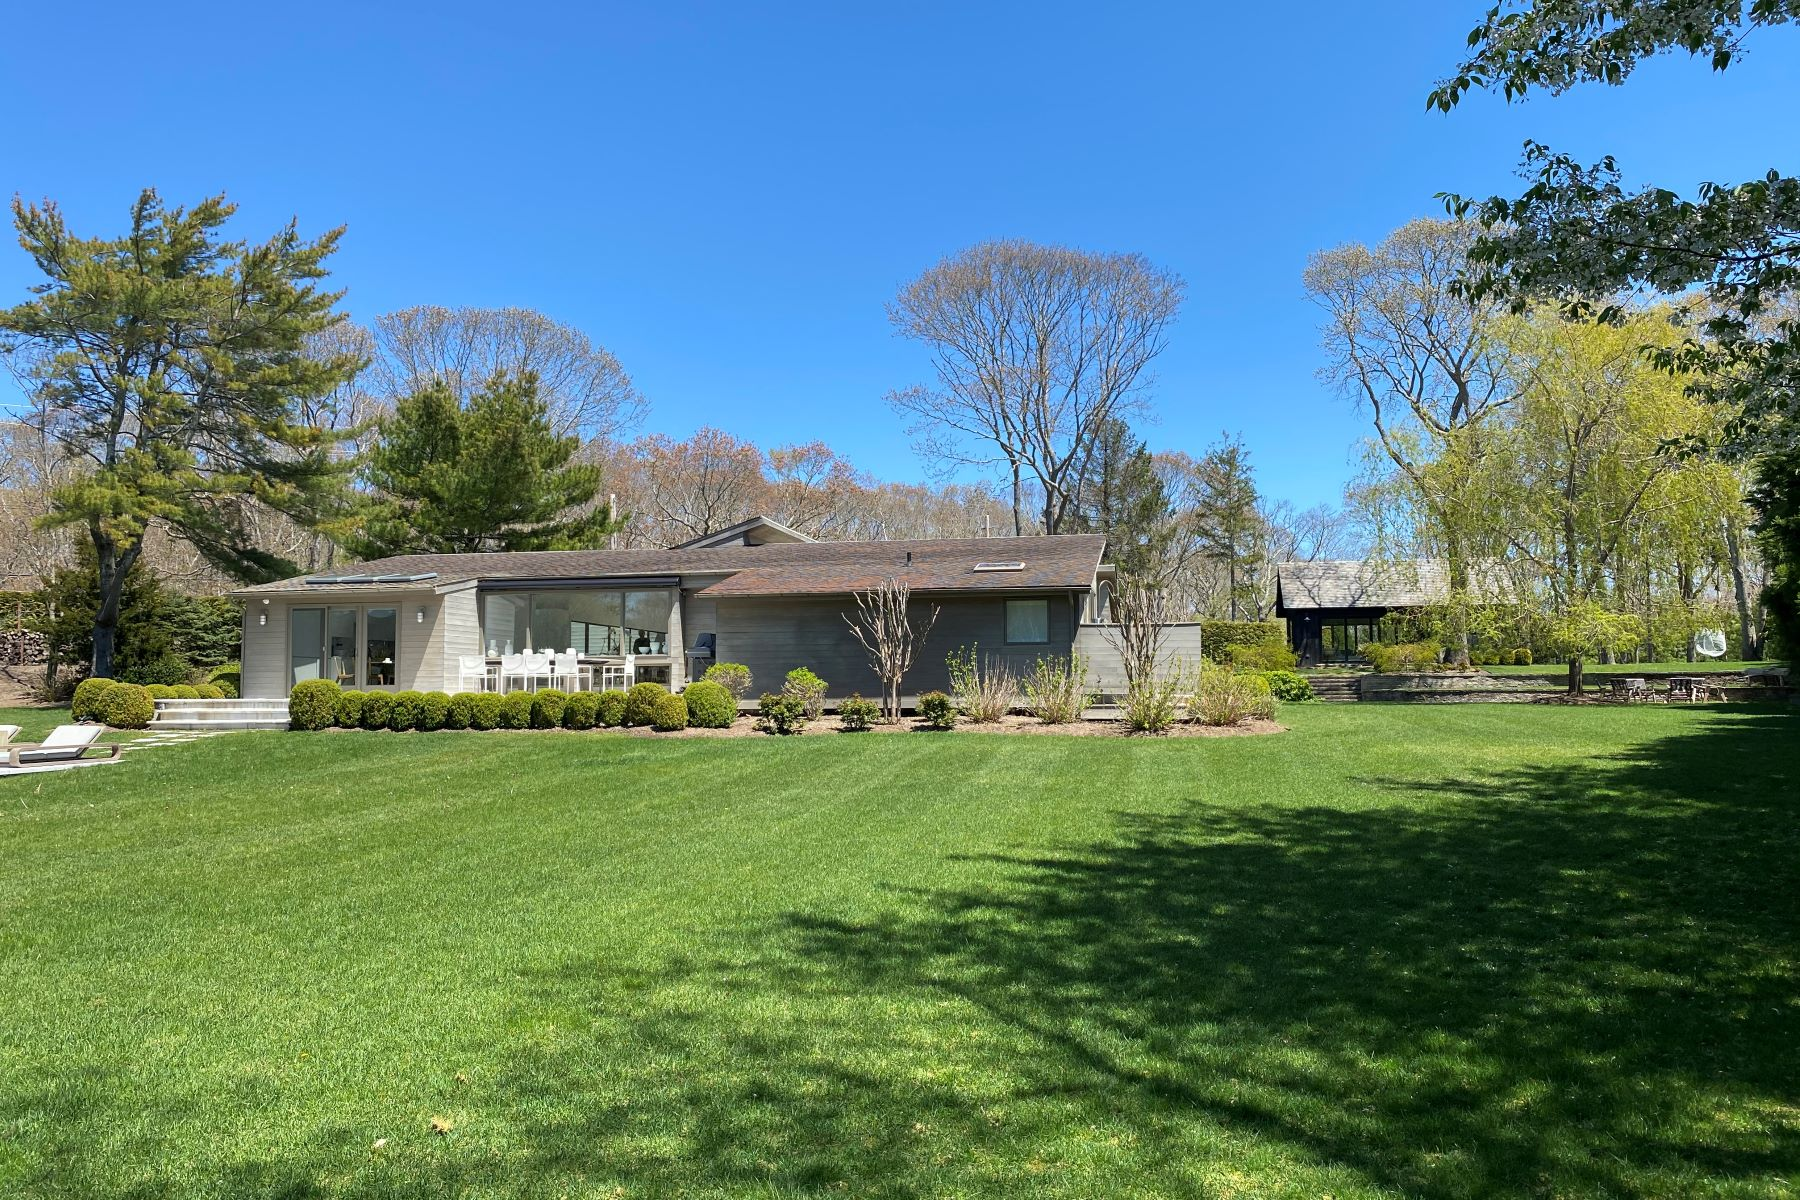 Single Family Homes for Sale at HOME AWAY FROM HOME 228 & 242 Town Lane Amagansett, New York 11937 United States